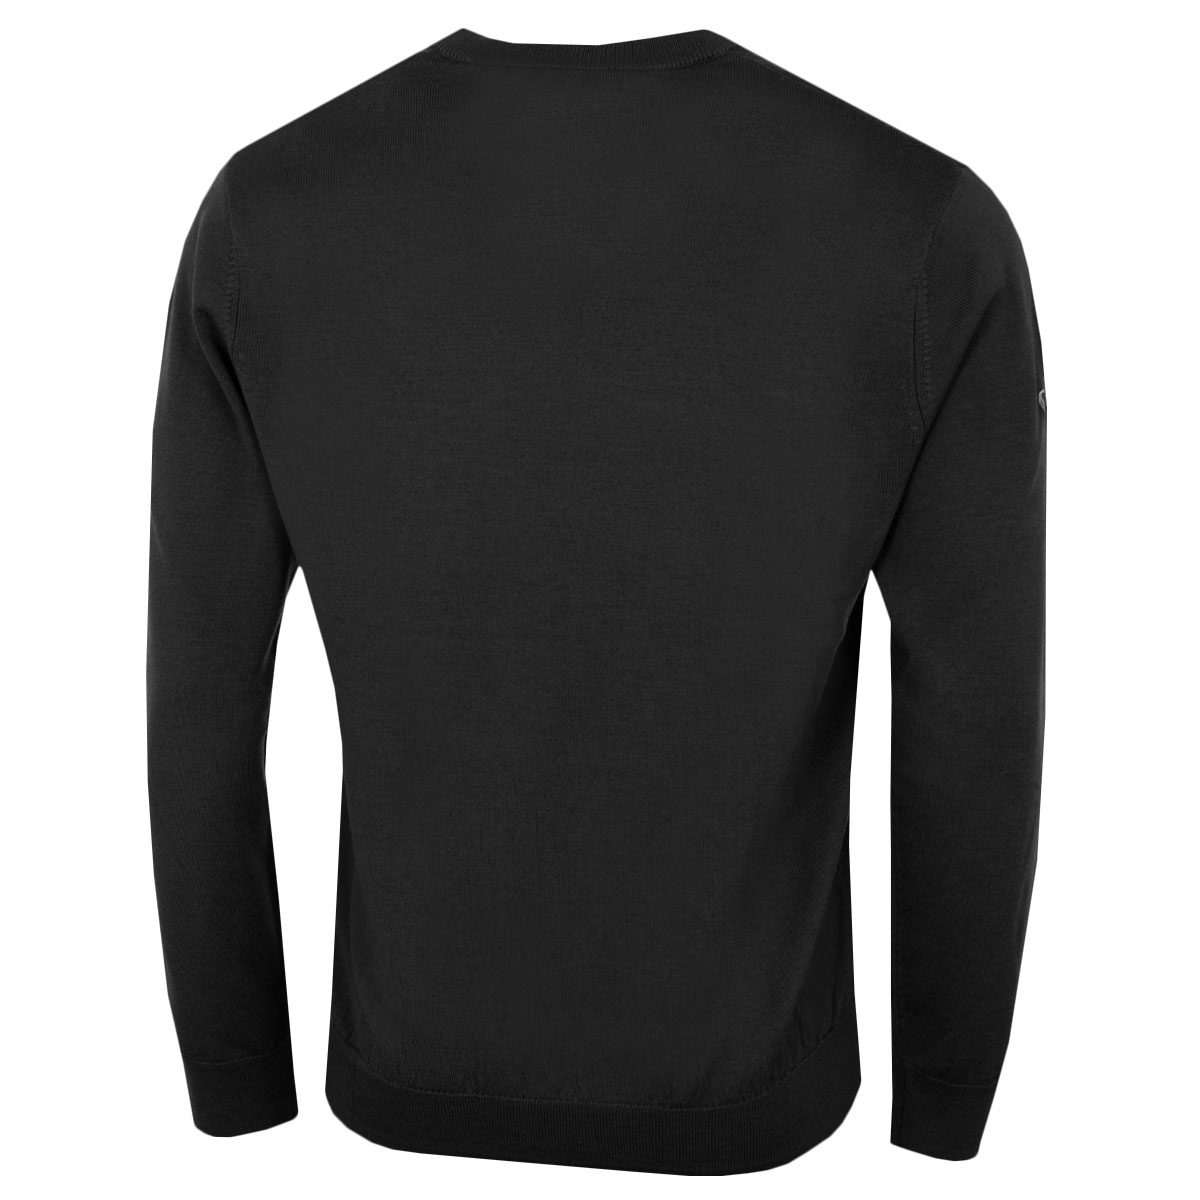 Callaway-Golf-Mens-Ribbed-V-Neck-Merino-Opti-Therm-Sweater-Jumper-64-OFF-RRP thumbnail 3